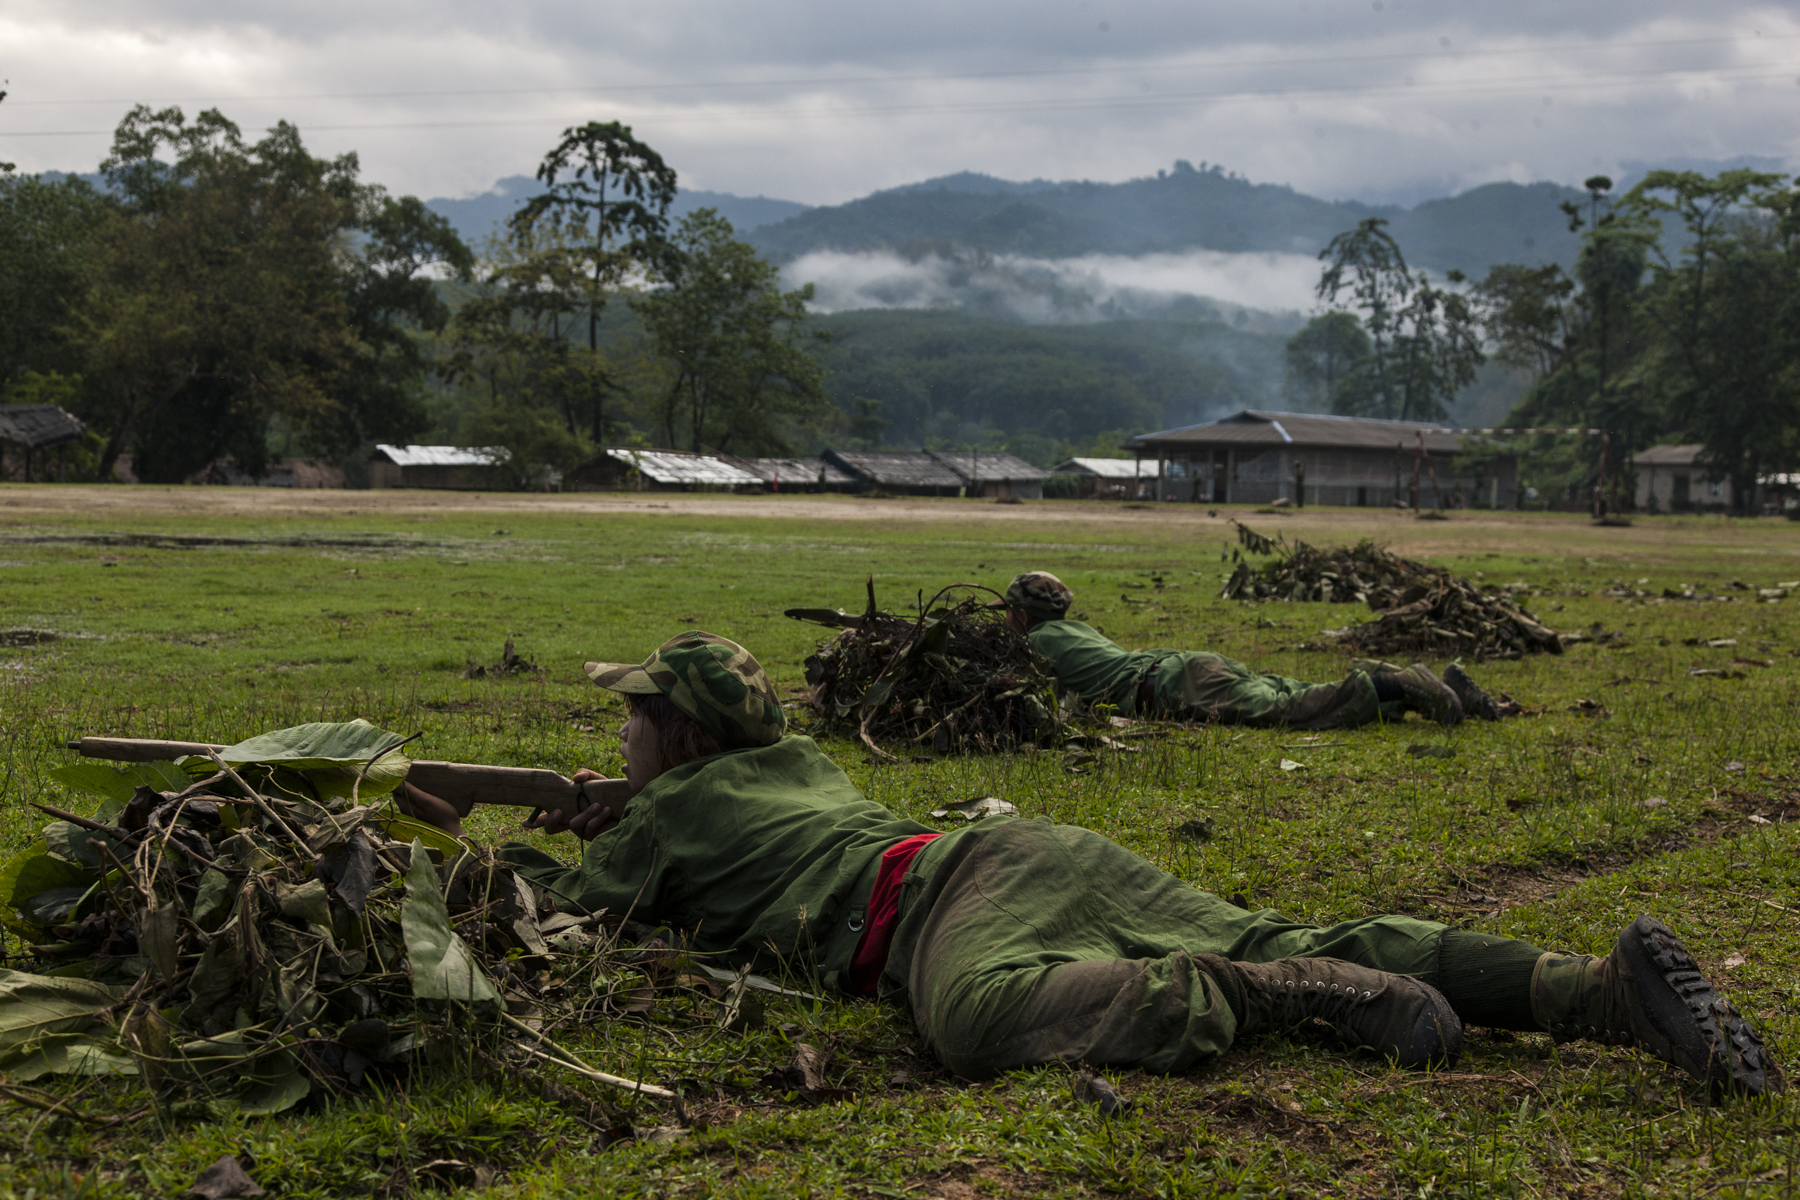 Basic military training began every morning before sunrise at the KIA's military base outside of Laiza, Kachin State, Myanmar, May 17, 2013.